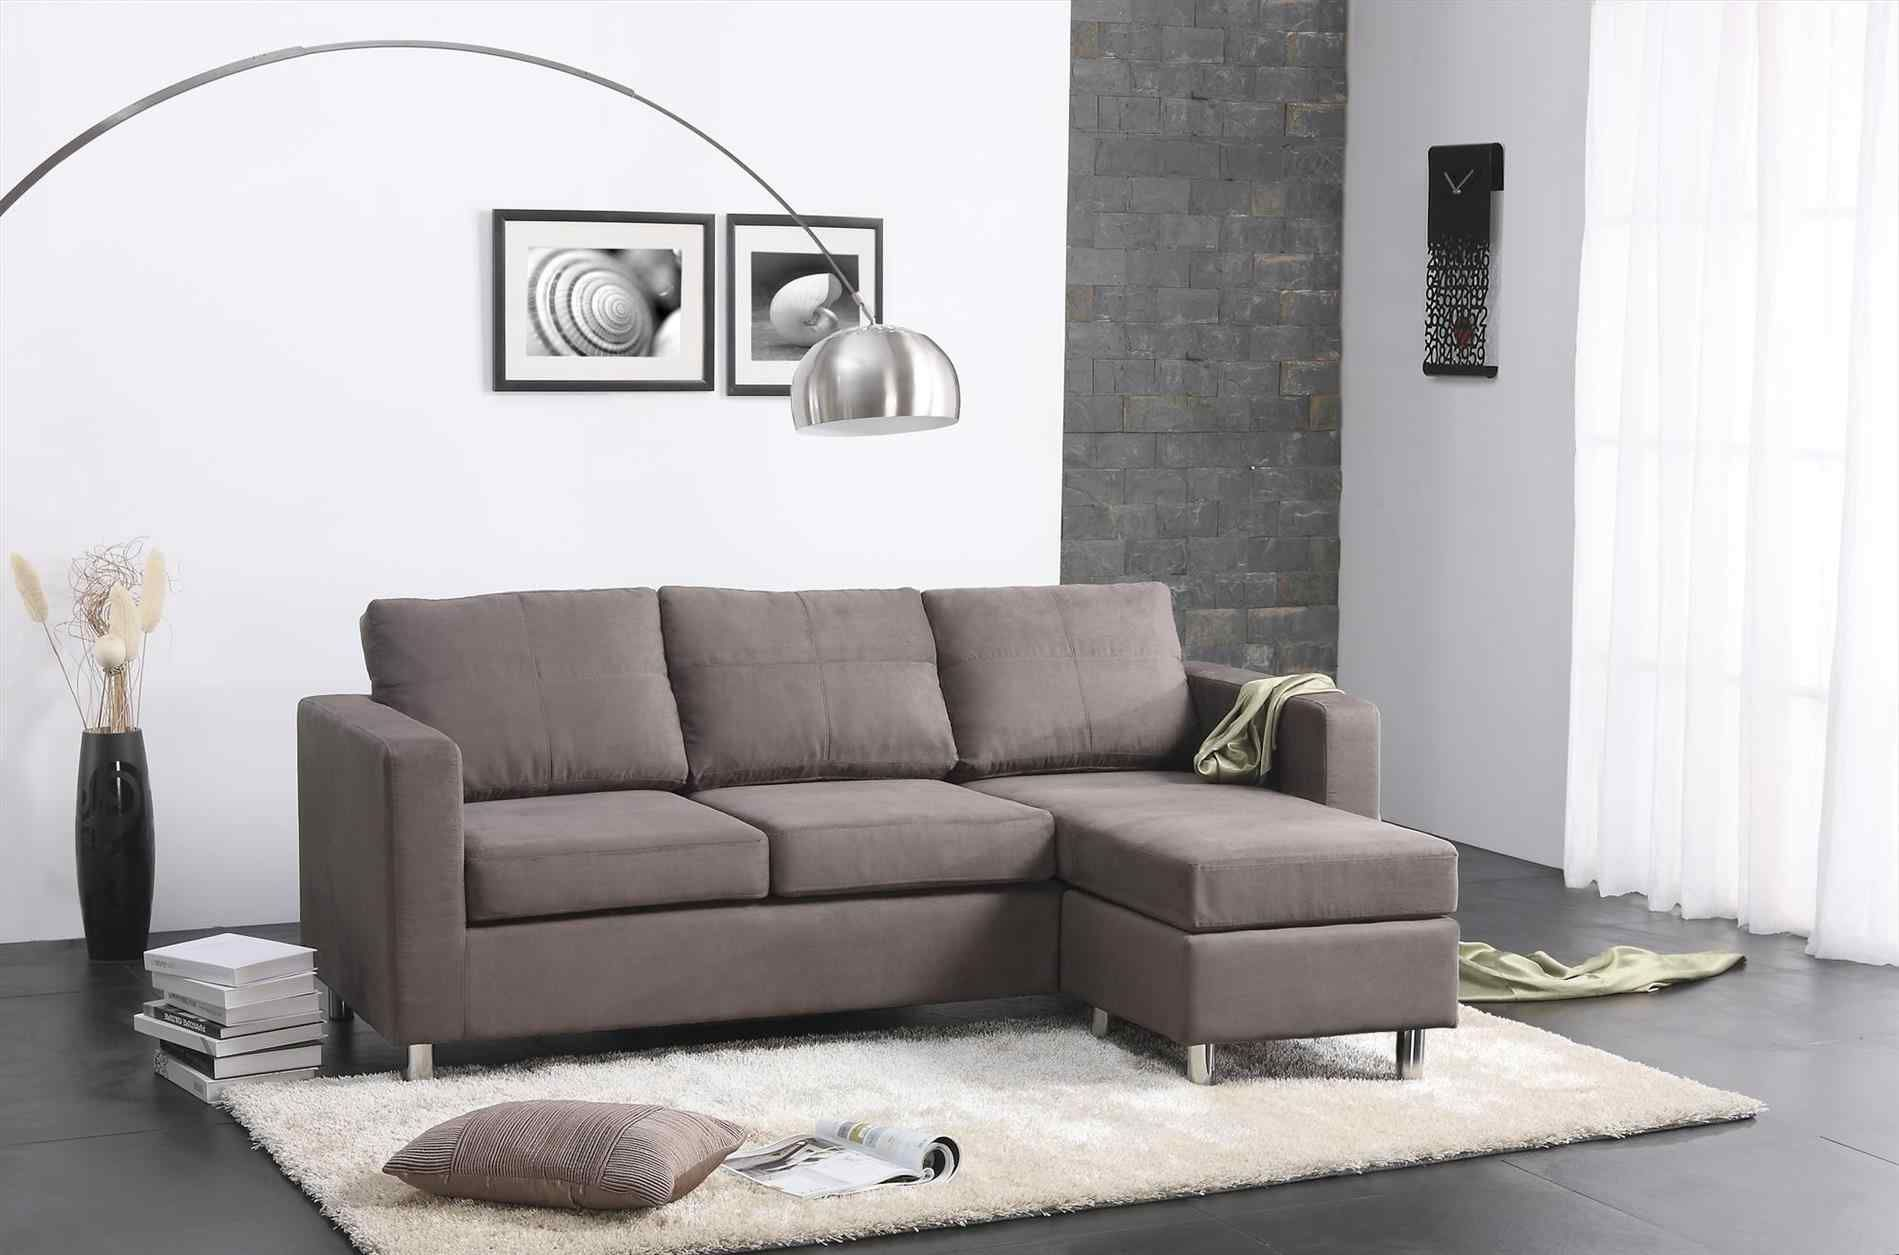 Leather Sofas good quality sectional sofas living roomsclassic leather light brown sofa set for cream power reclining top